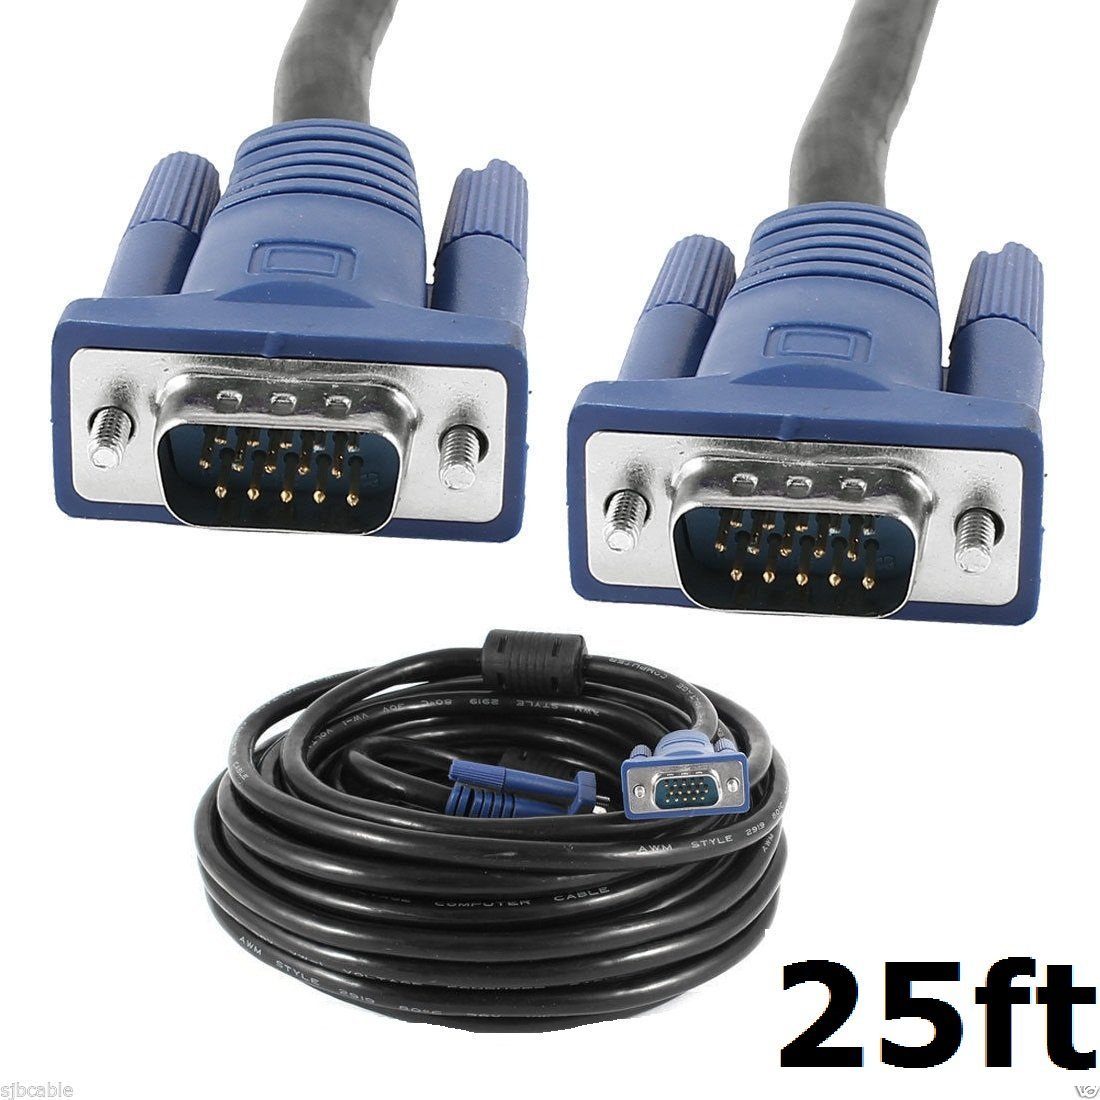 CableVantage HD15 15Pin 8M VGA Male to Male VGA Video 25FT Cable For TV Computer Monitor Blue For PC TV Computer Monitor Extension VGA Cable